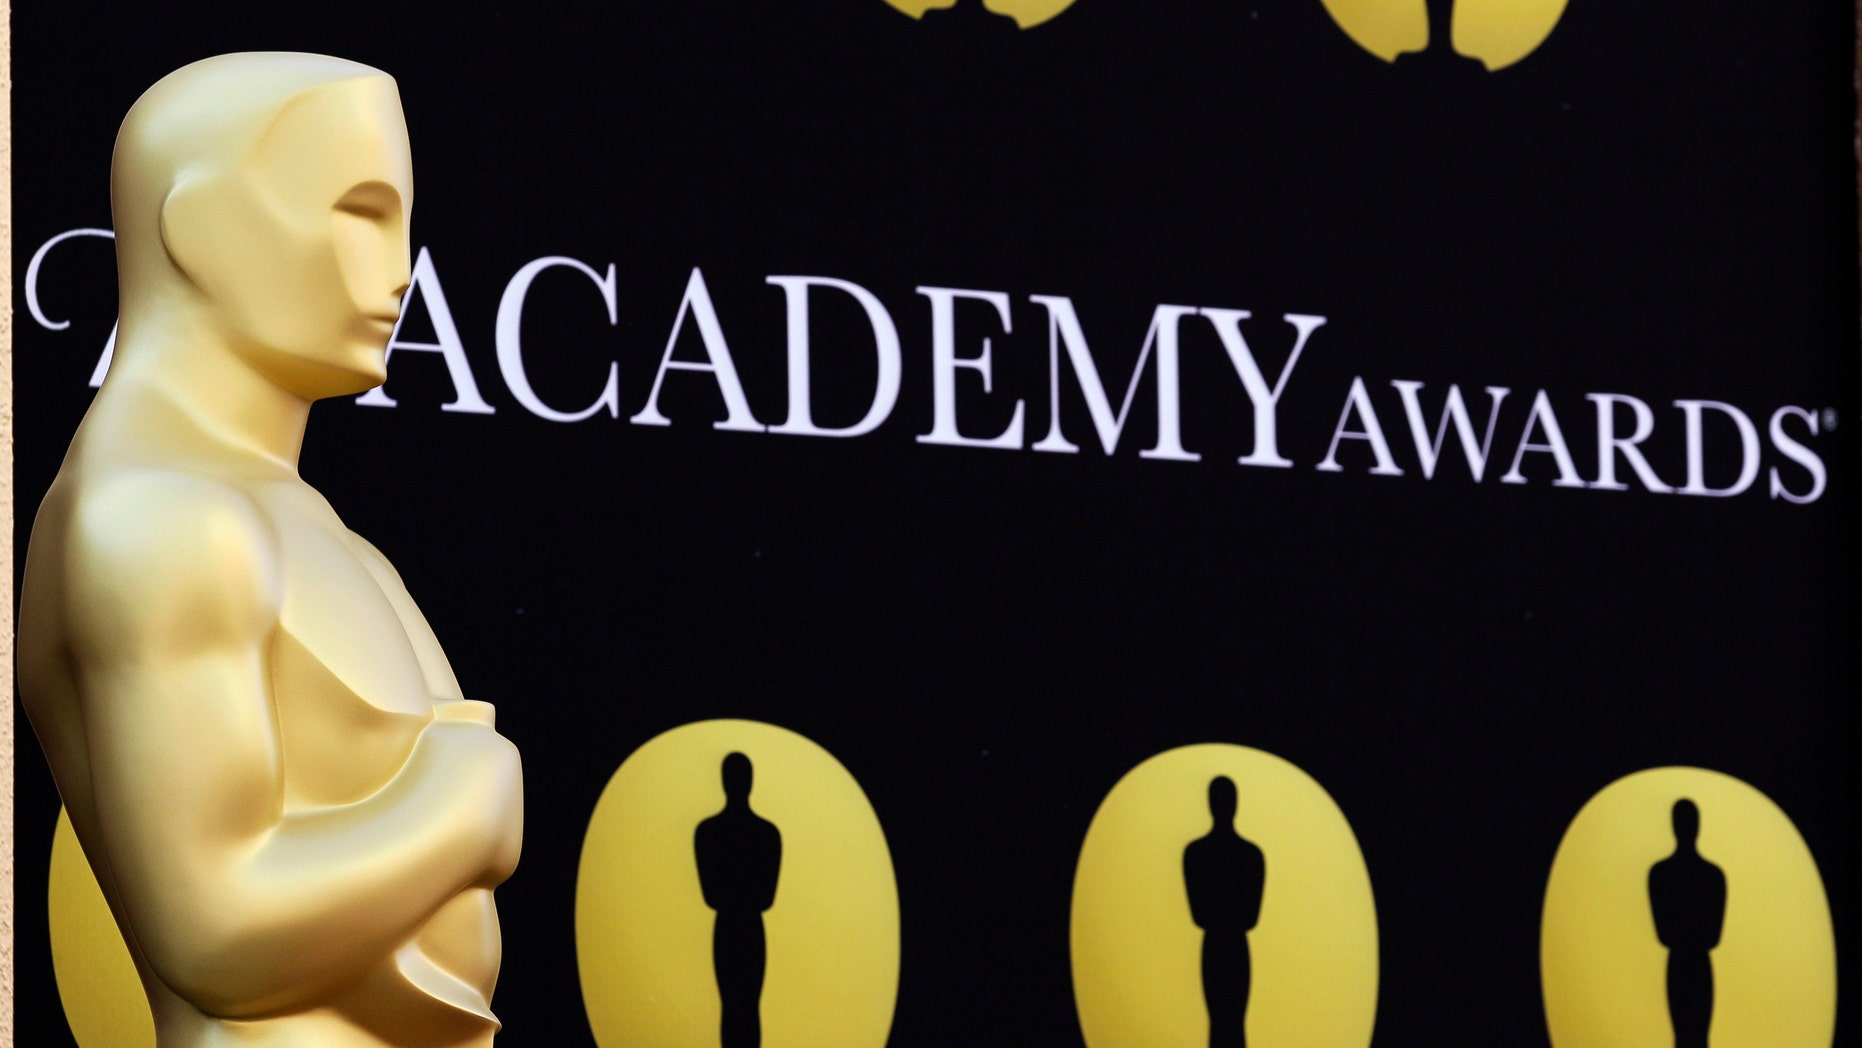 FILE - In this March 5, 2010 file photo, an Oscar statue stands on the red carpet outside the Kodak Theatre as preparations continue for the 82nd Academy Awards in Los Angeles, Calif. The motion picture academy says it's extending the deadline for members to vote for the Academy Awards to Jan. 4,  2013, following criticism of its new electronic voting system. The 85th annual Academy Awards are scheduled for Feb. 24, 2013. (AP Photo/Amy Sancetta, File)